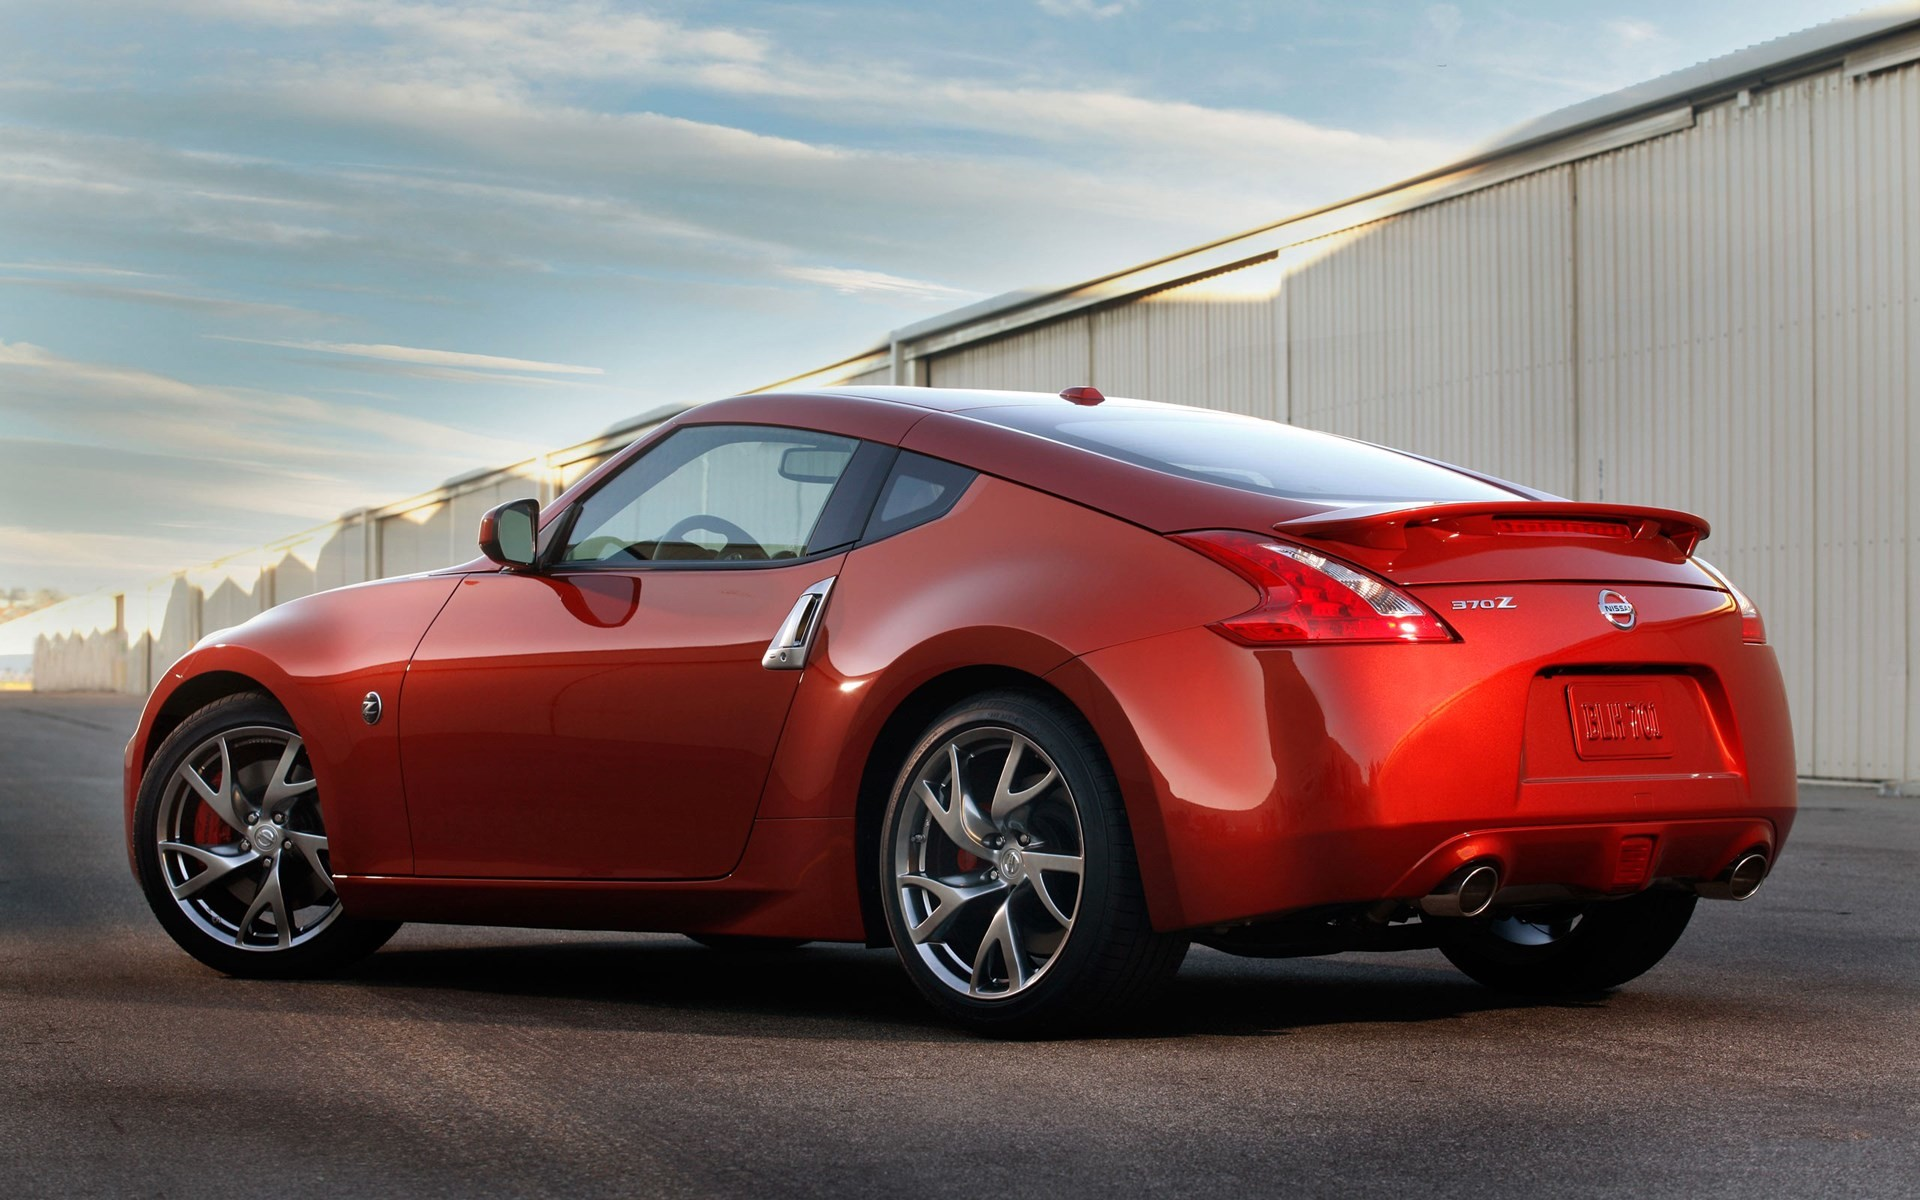 1920x1200 nissan 350z backround full hd by Farrin Birds (2017-03-23)